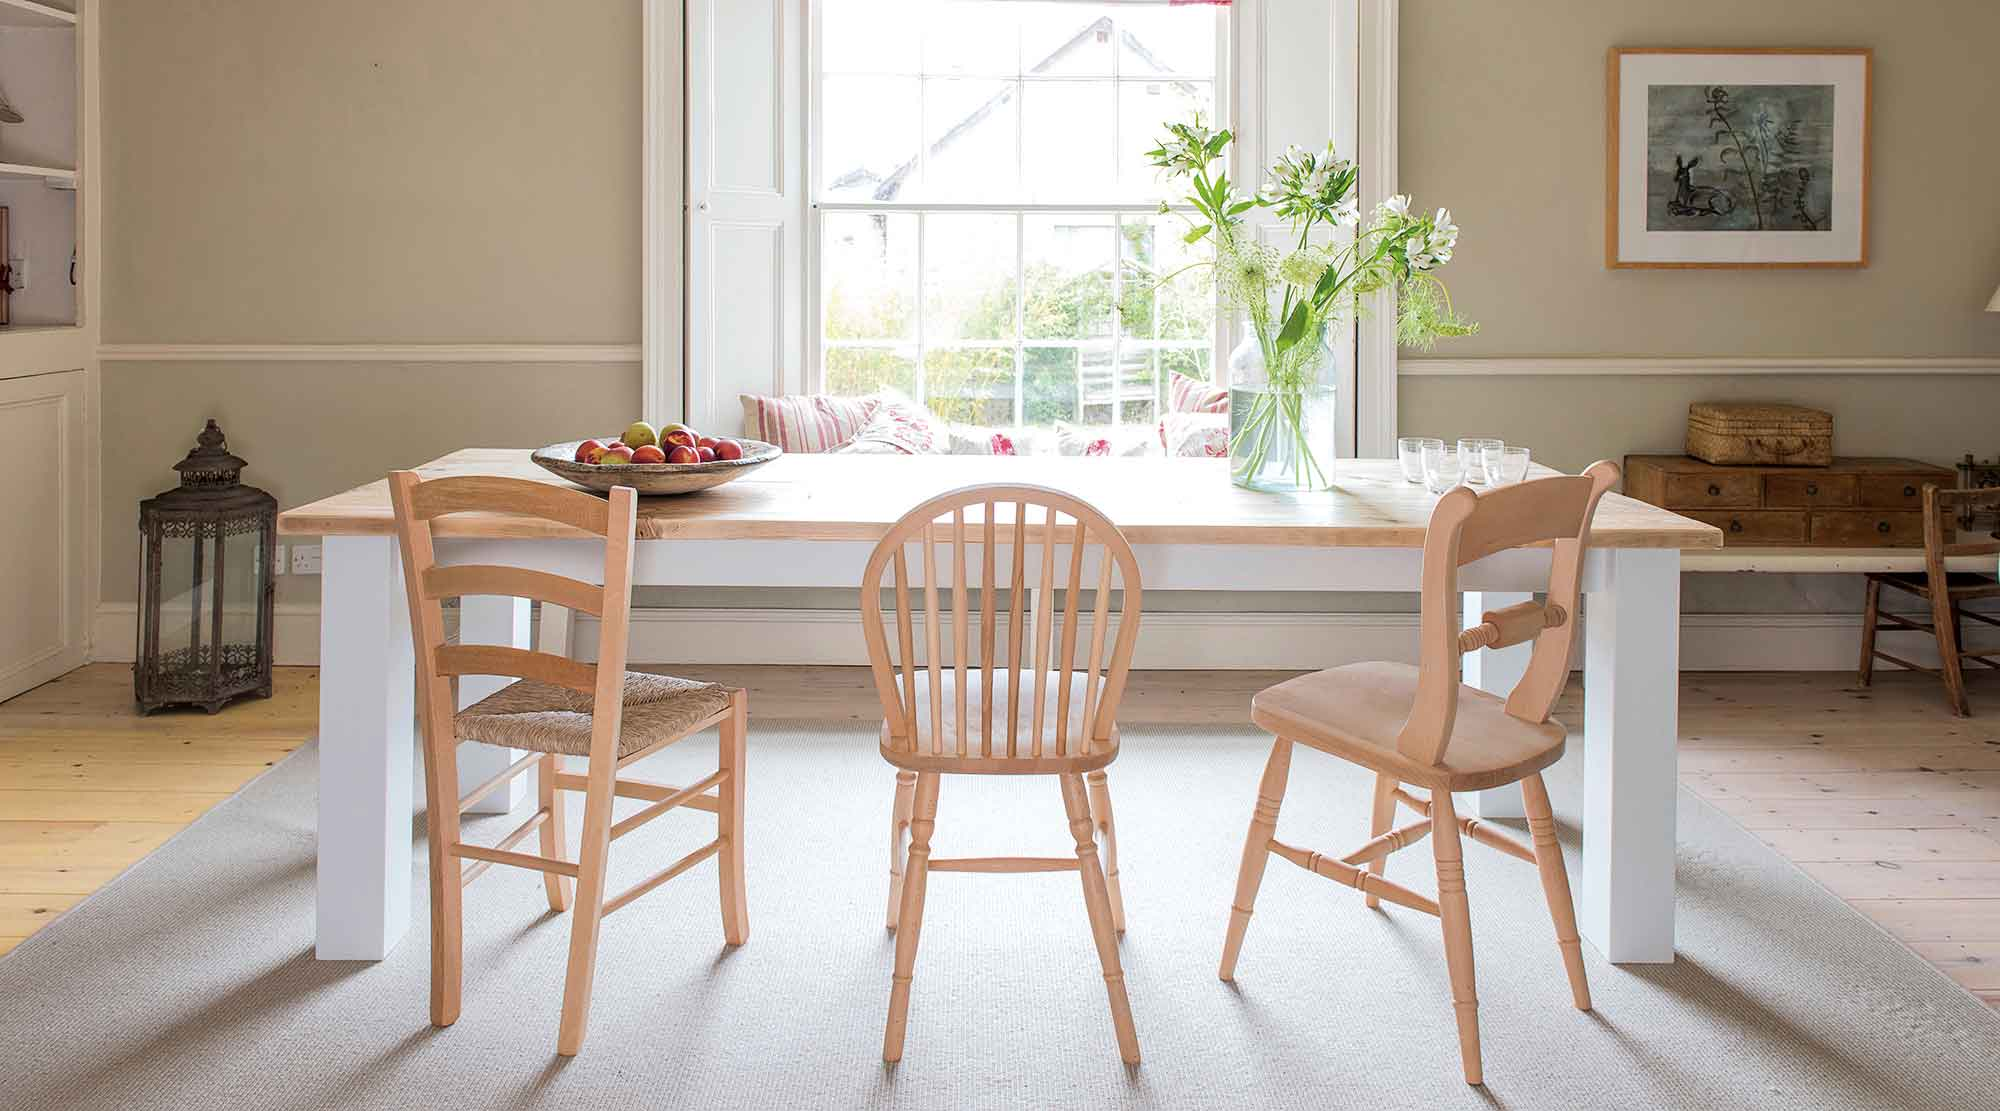 The Farmhouse Table Company